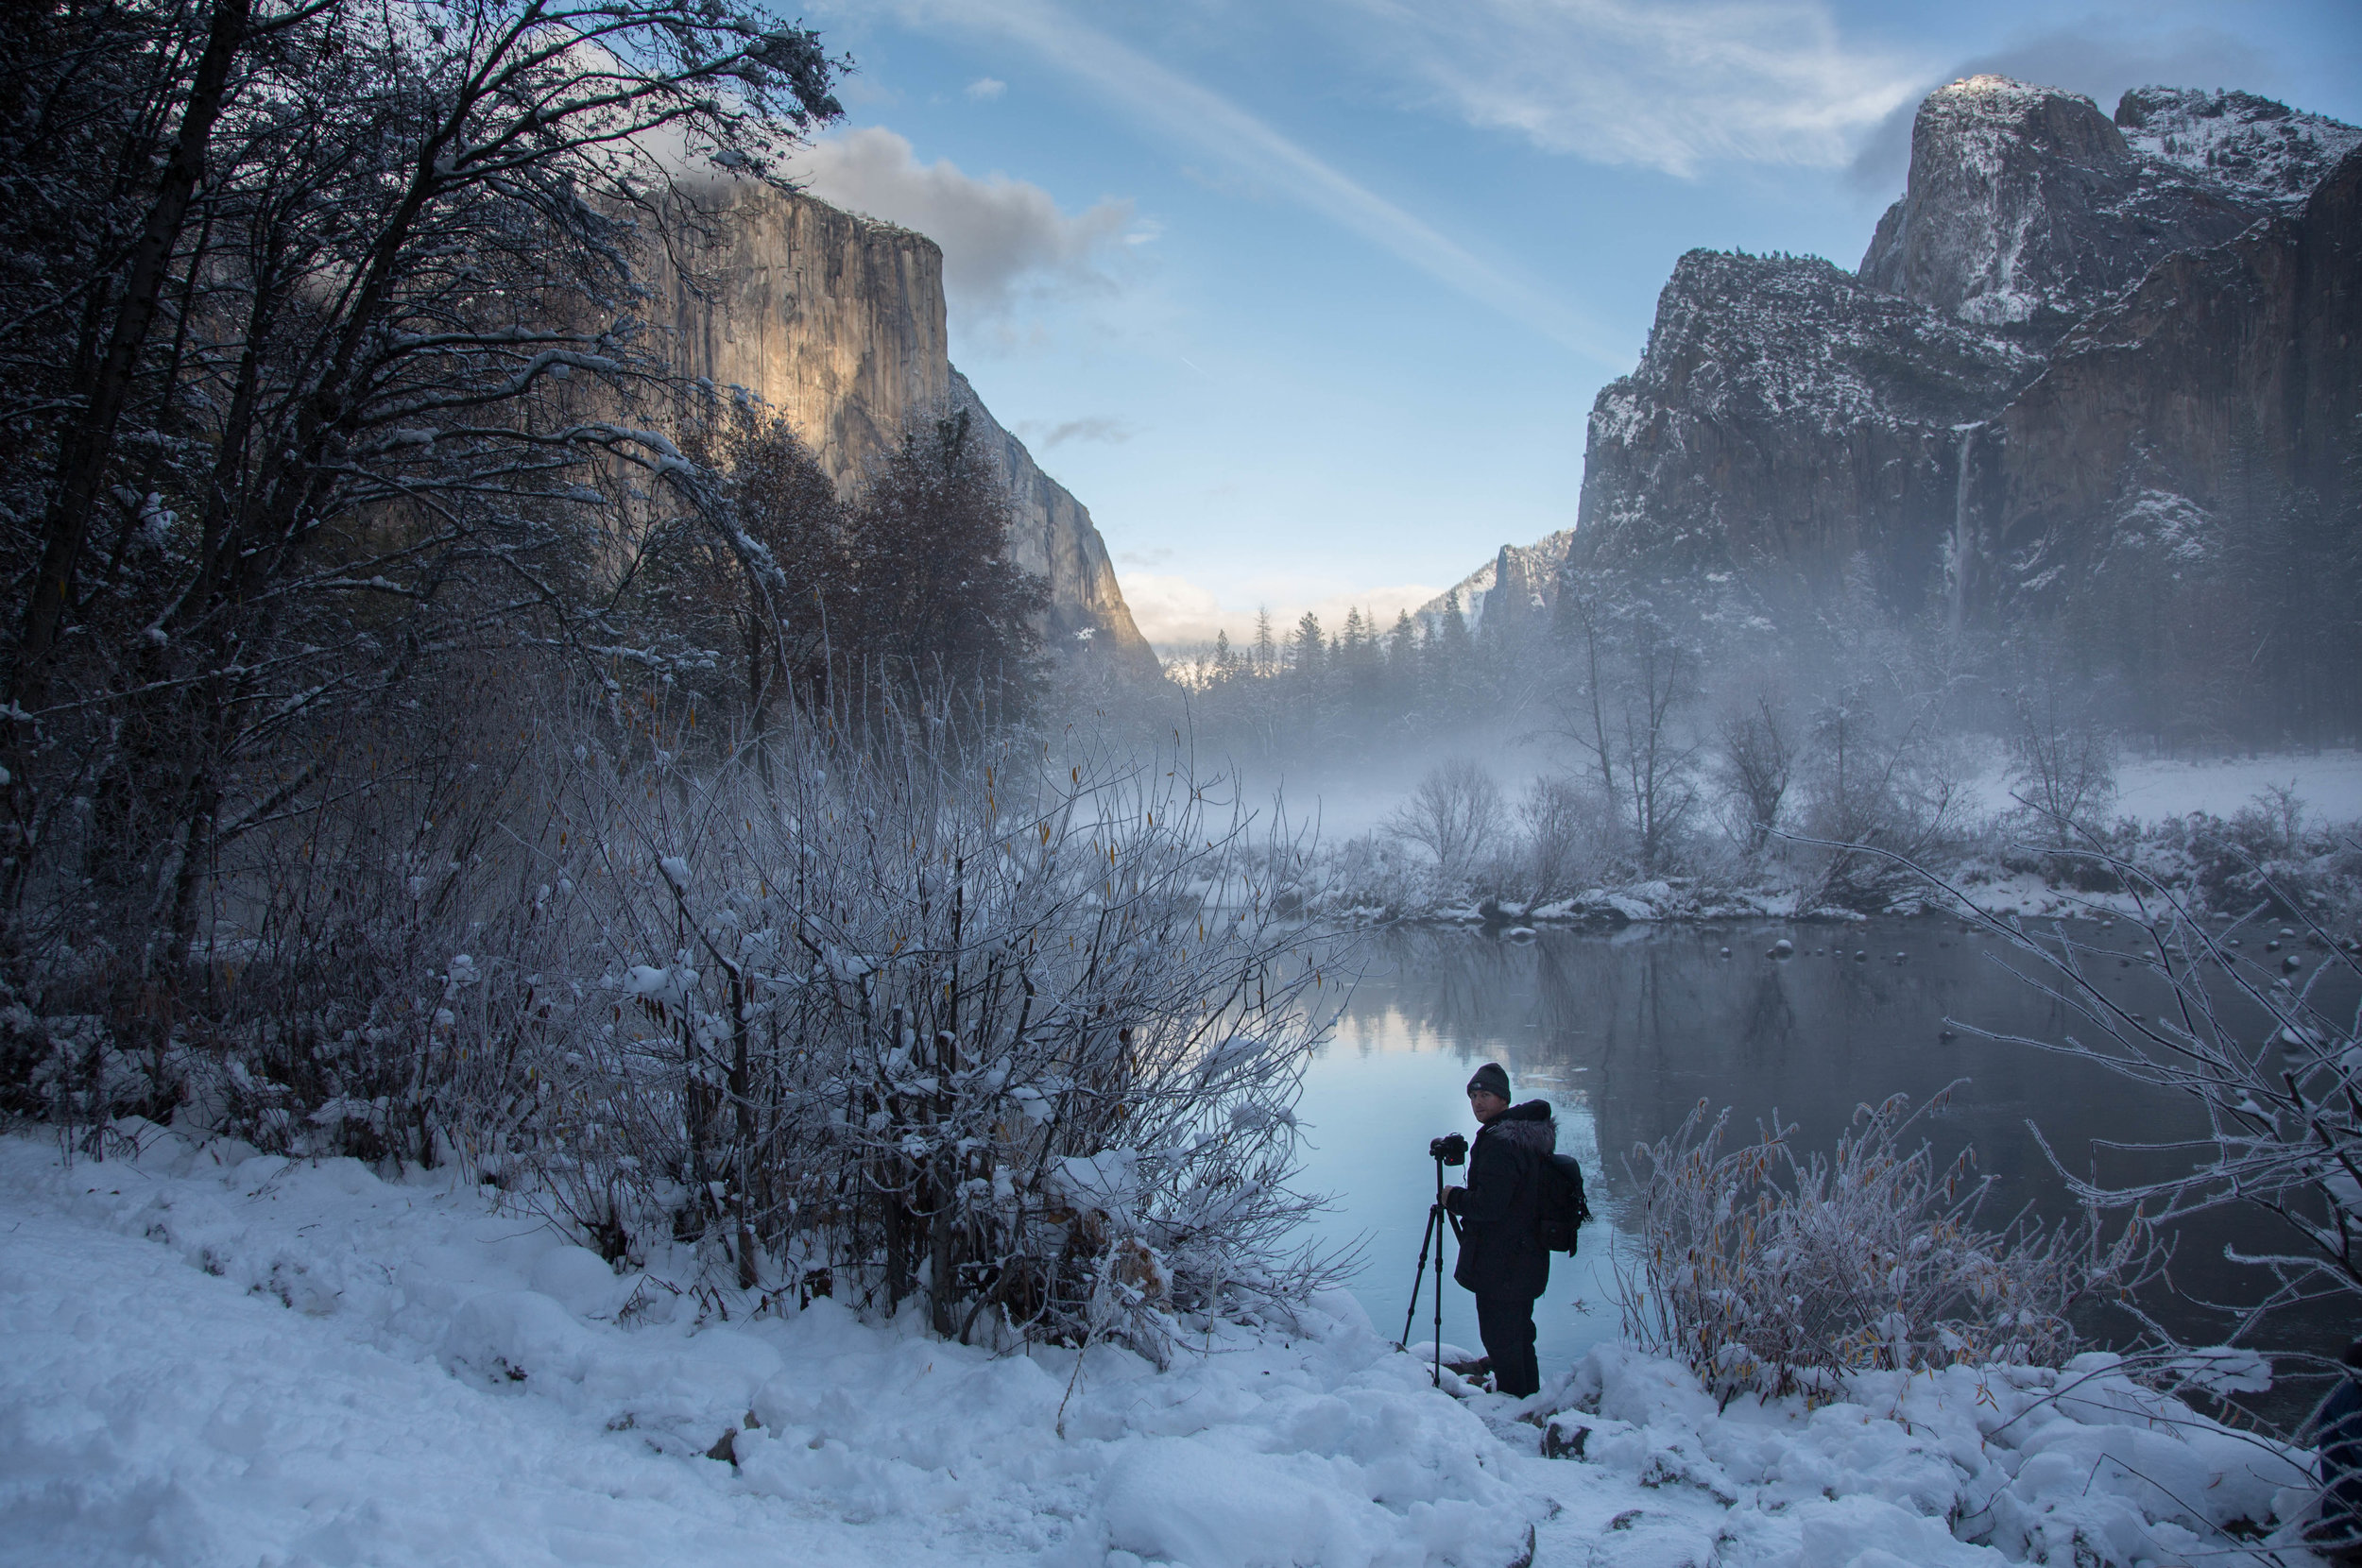 First Snow Fall at Yosemite National Park - December 2018. Photo taken by my wife, Adriana Krause.